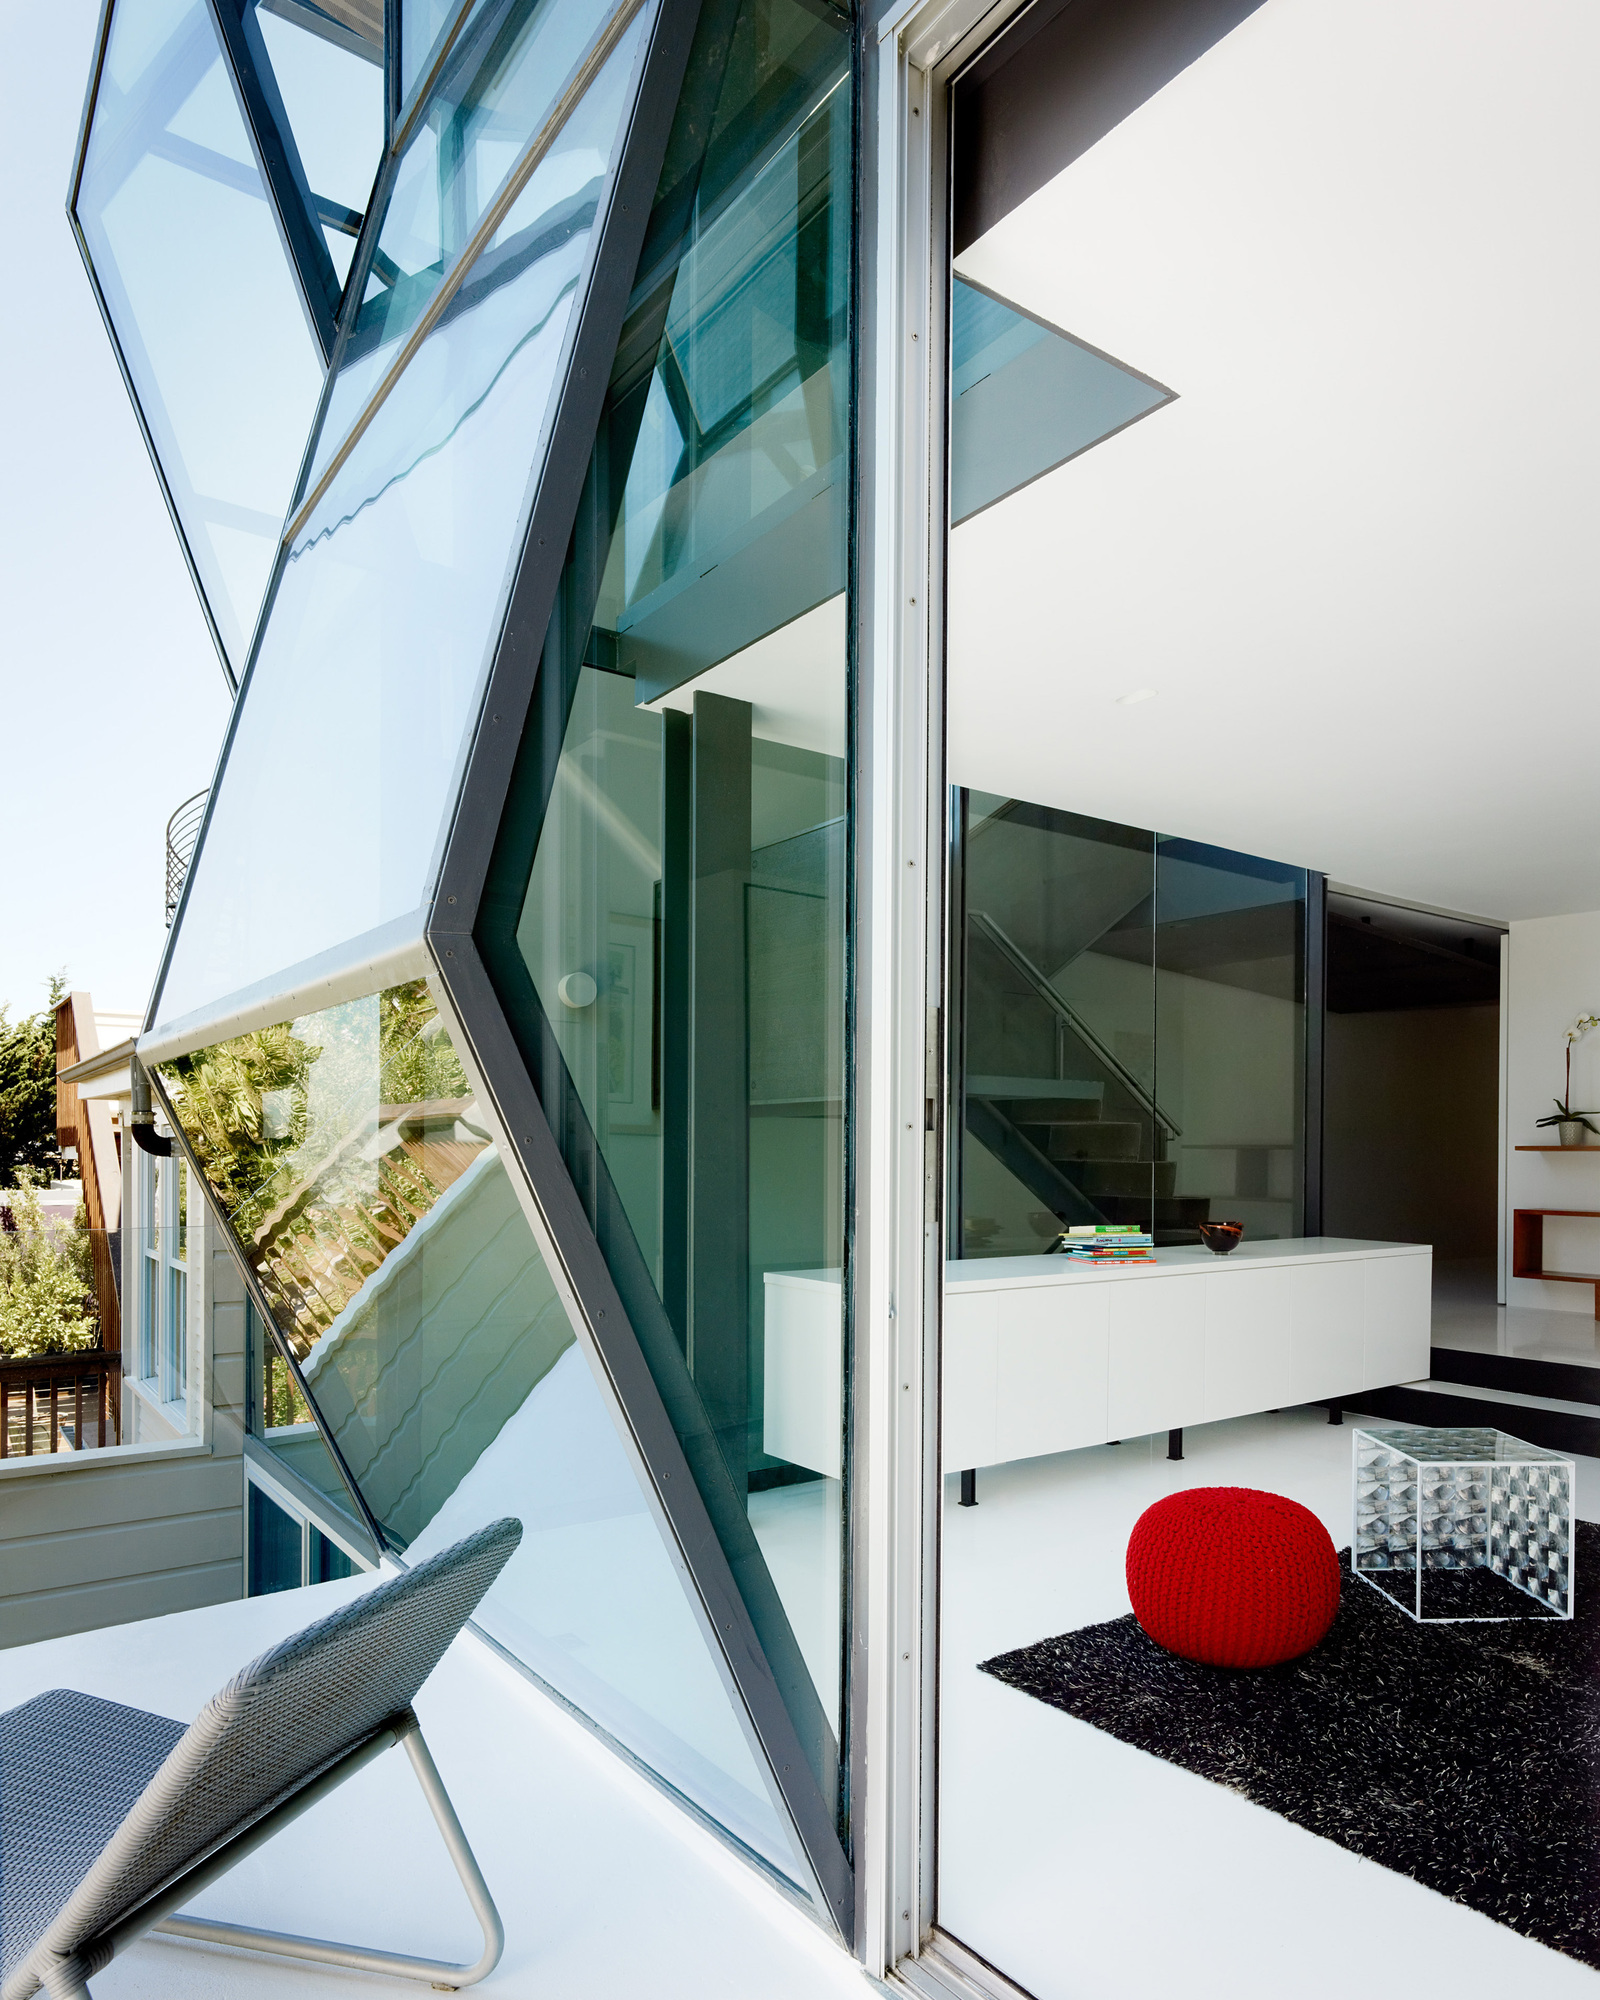 Flip-House-by-Fougeron-Architecture-in-San-FranciscoA-Different-Type-of-Renovation- connection